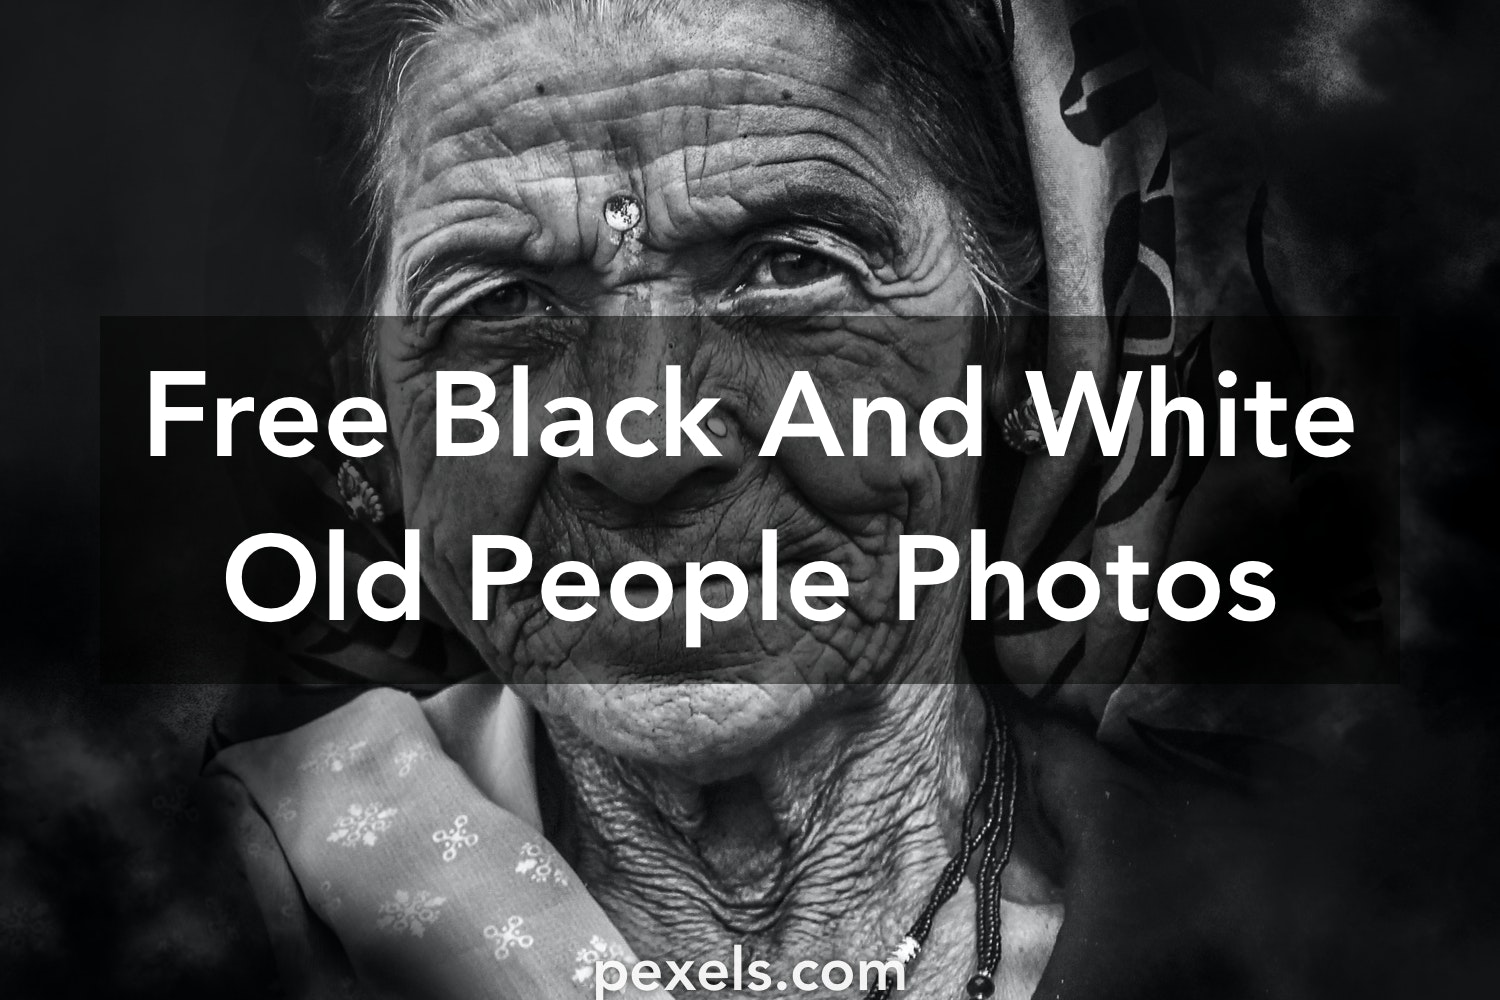 1000 great black and white old people photos · pexels · free stock photos